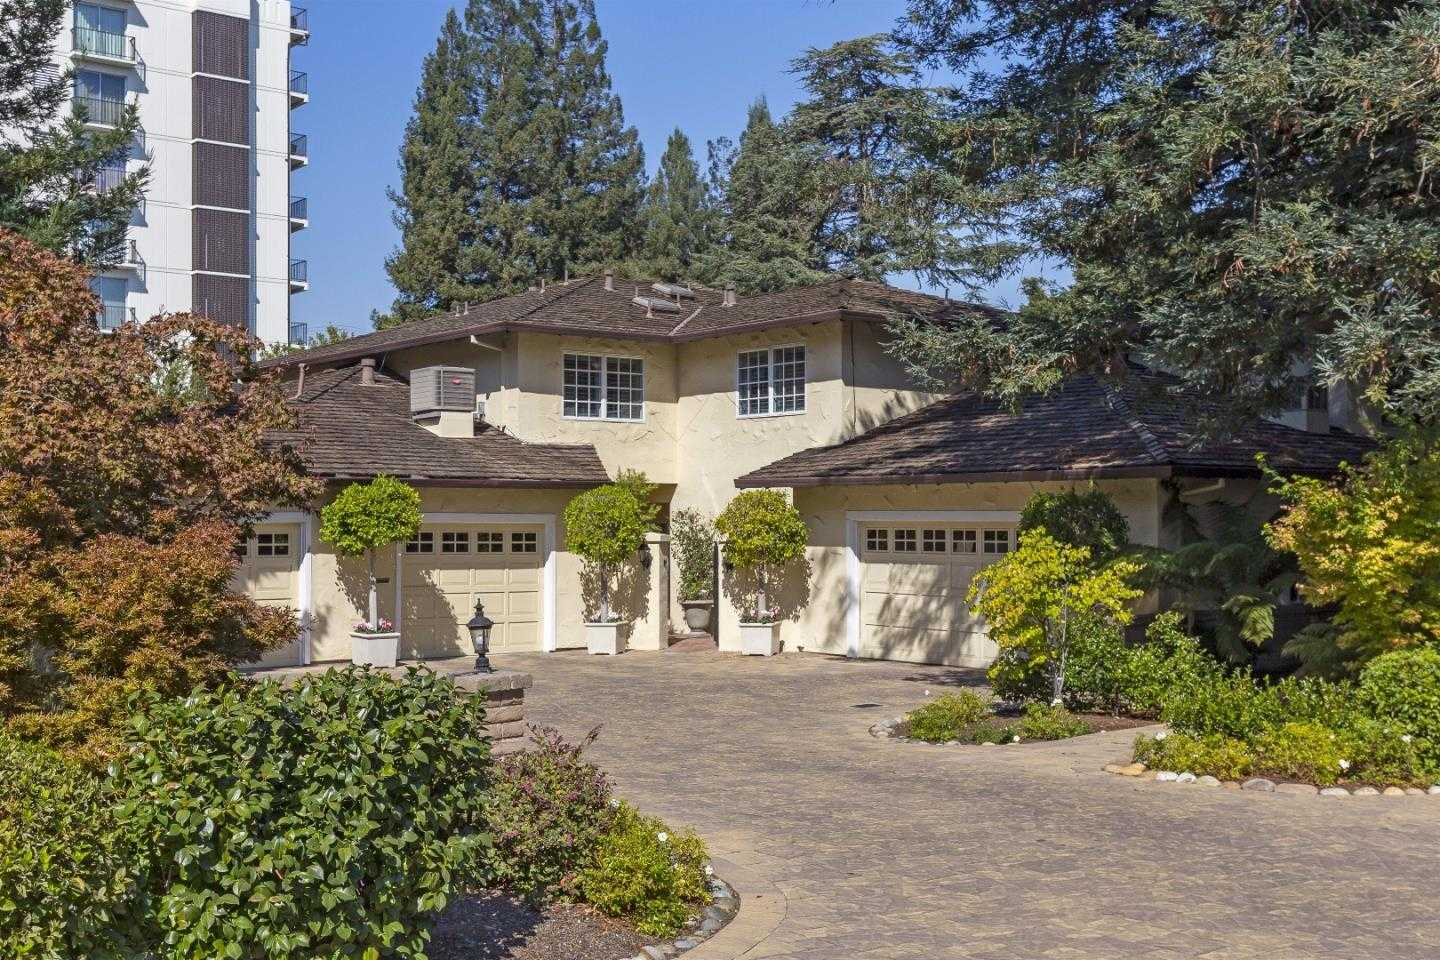 $2,995,000 - 4Br/3Ba -  for Sale in Menlo Park